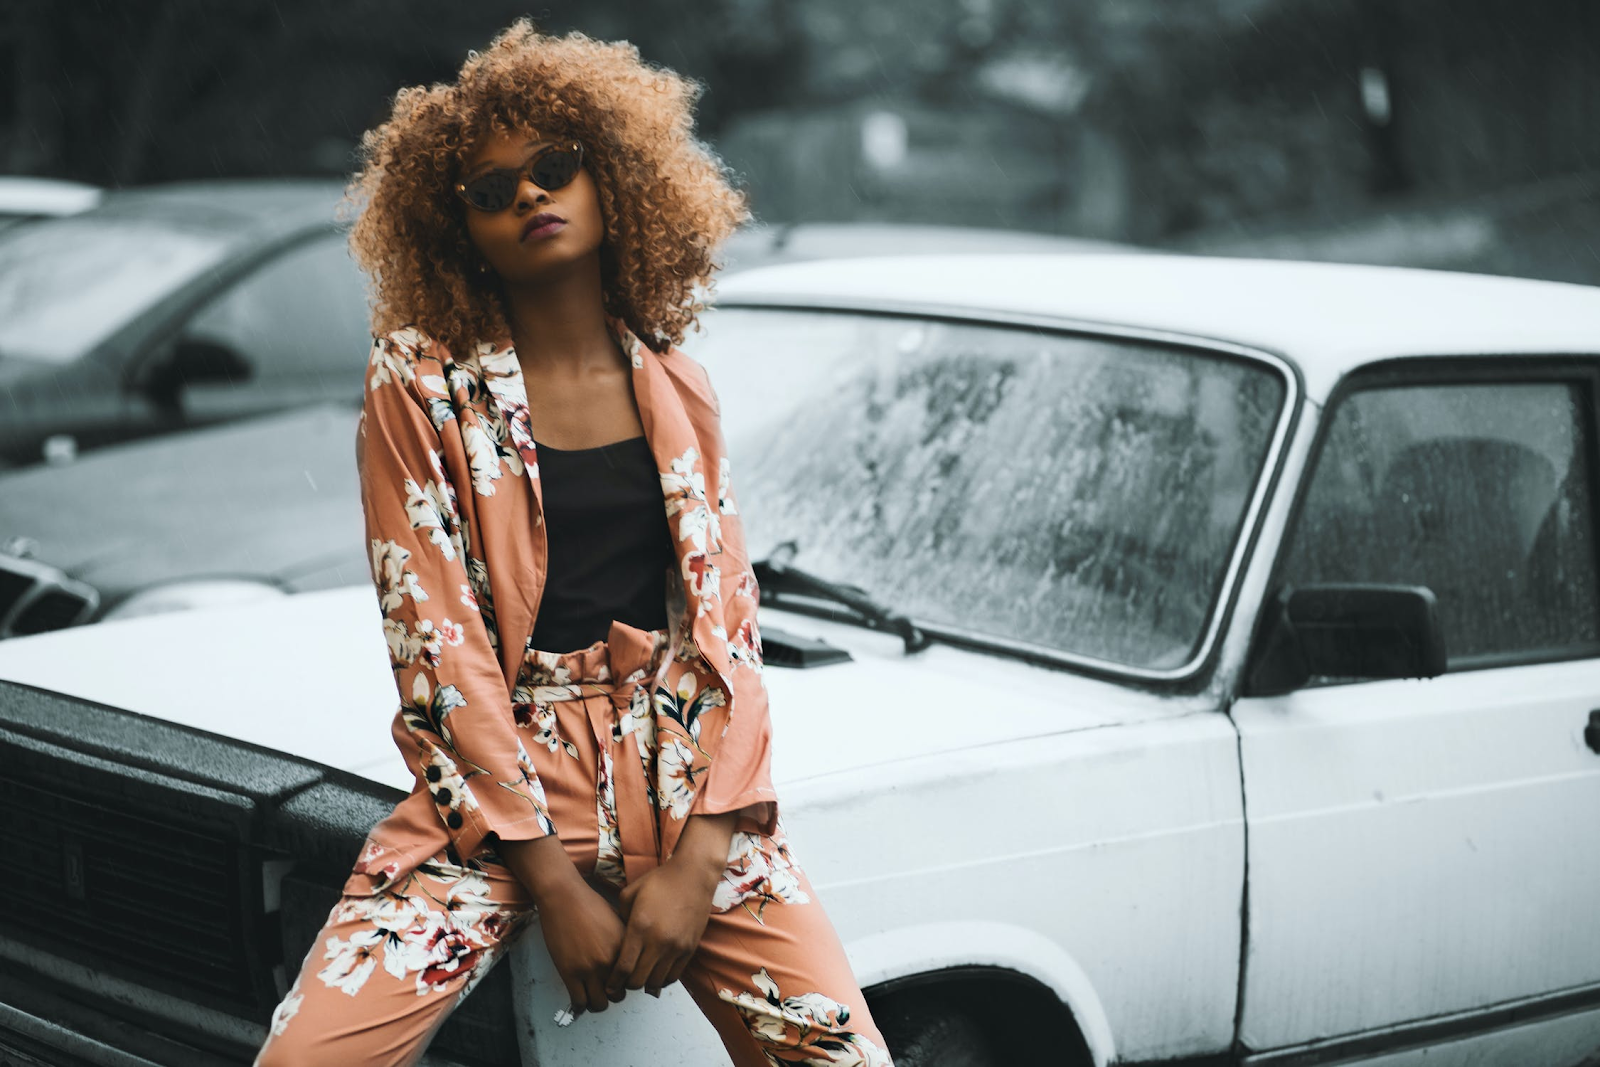 Young adult woman establishes her unique fashion sense with a fun patterned suit.